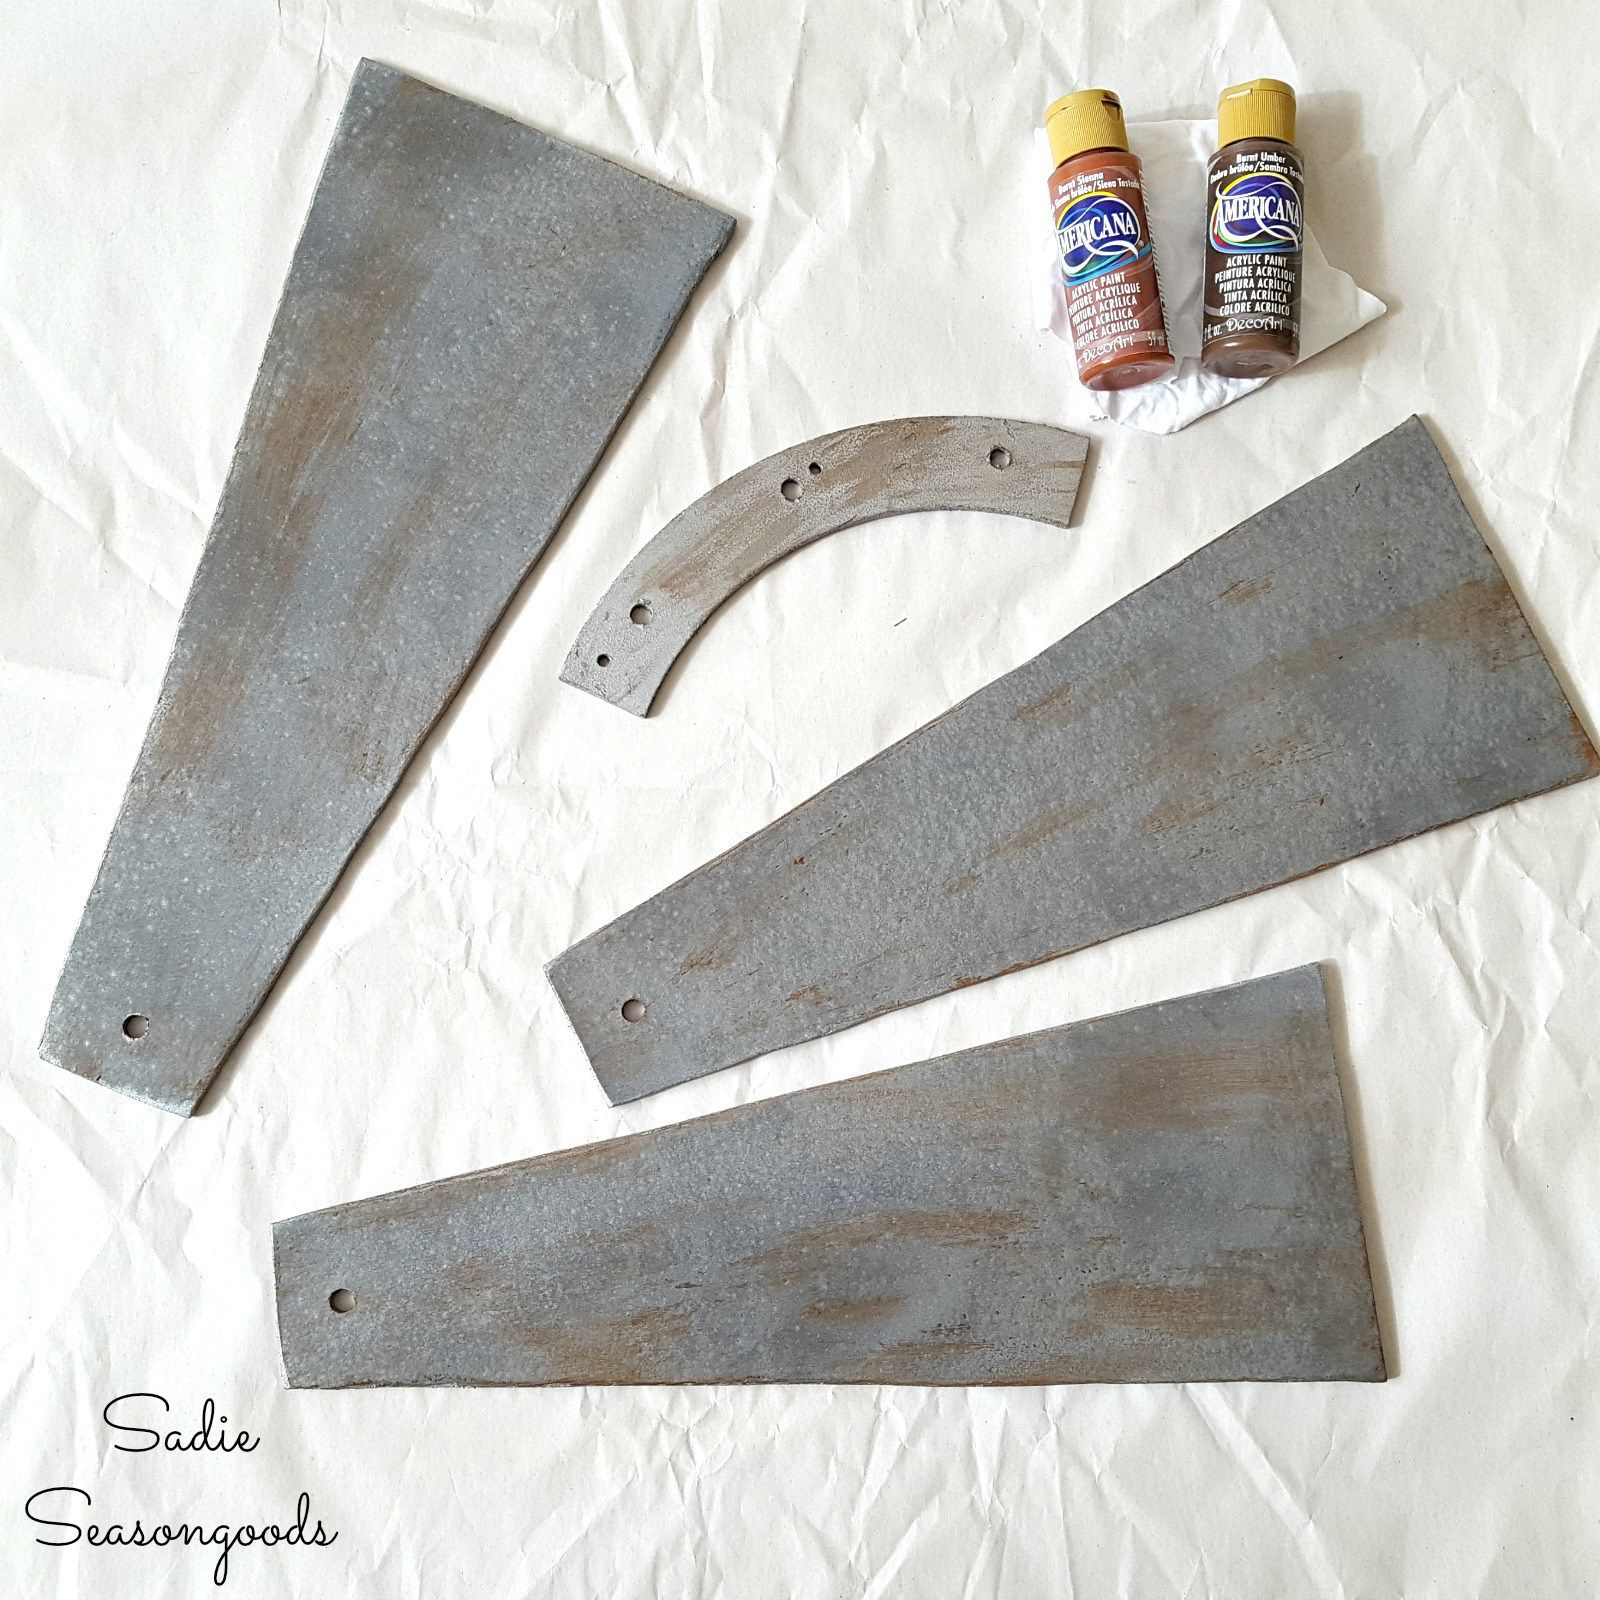 Saw Blade Fan : Outdated ceiling fan blades to be repurposed into diy